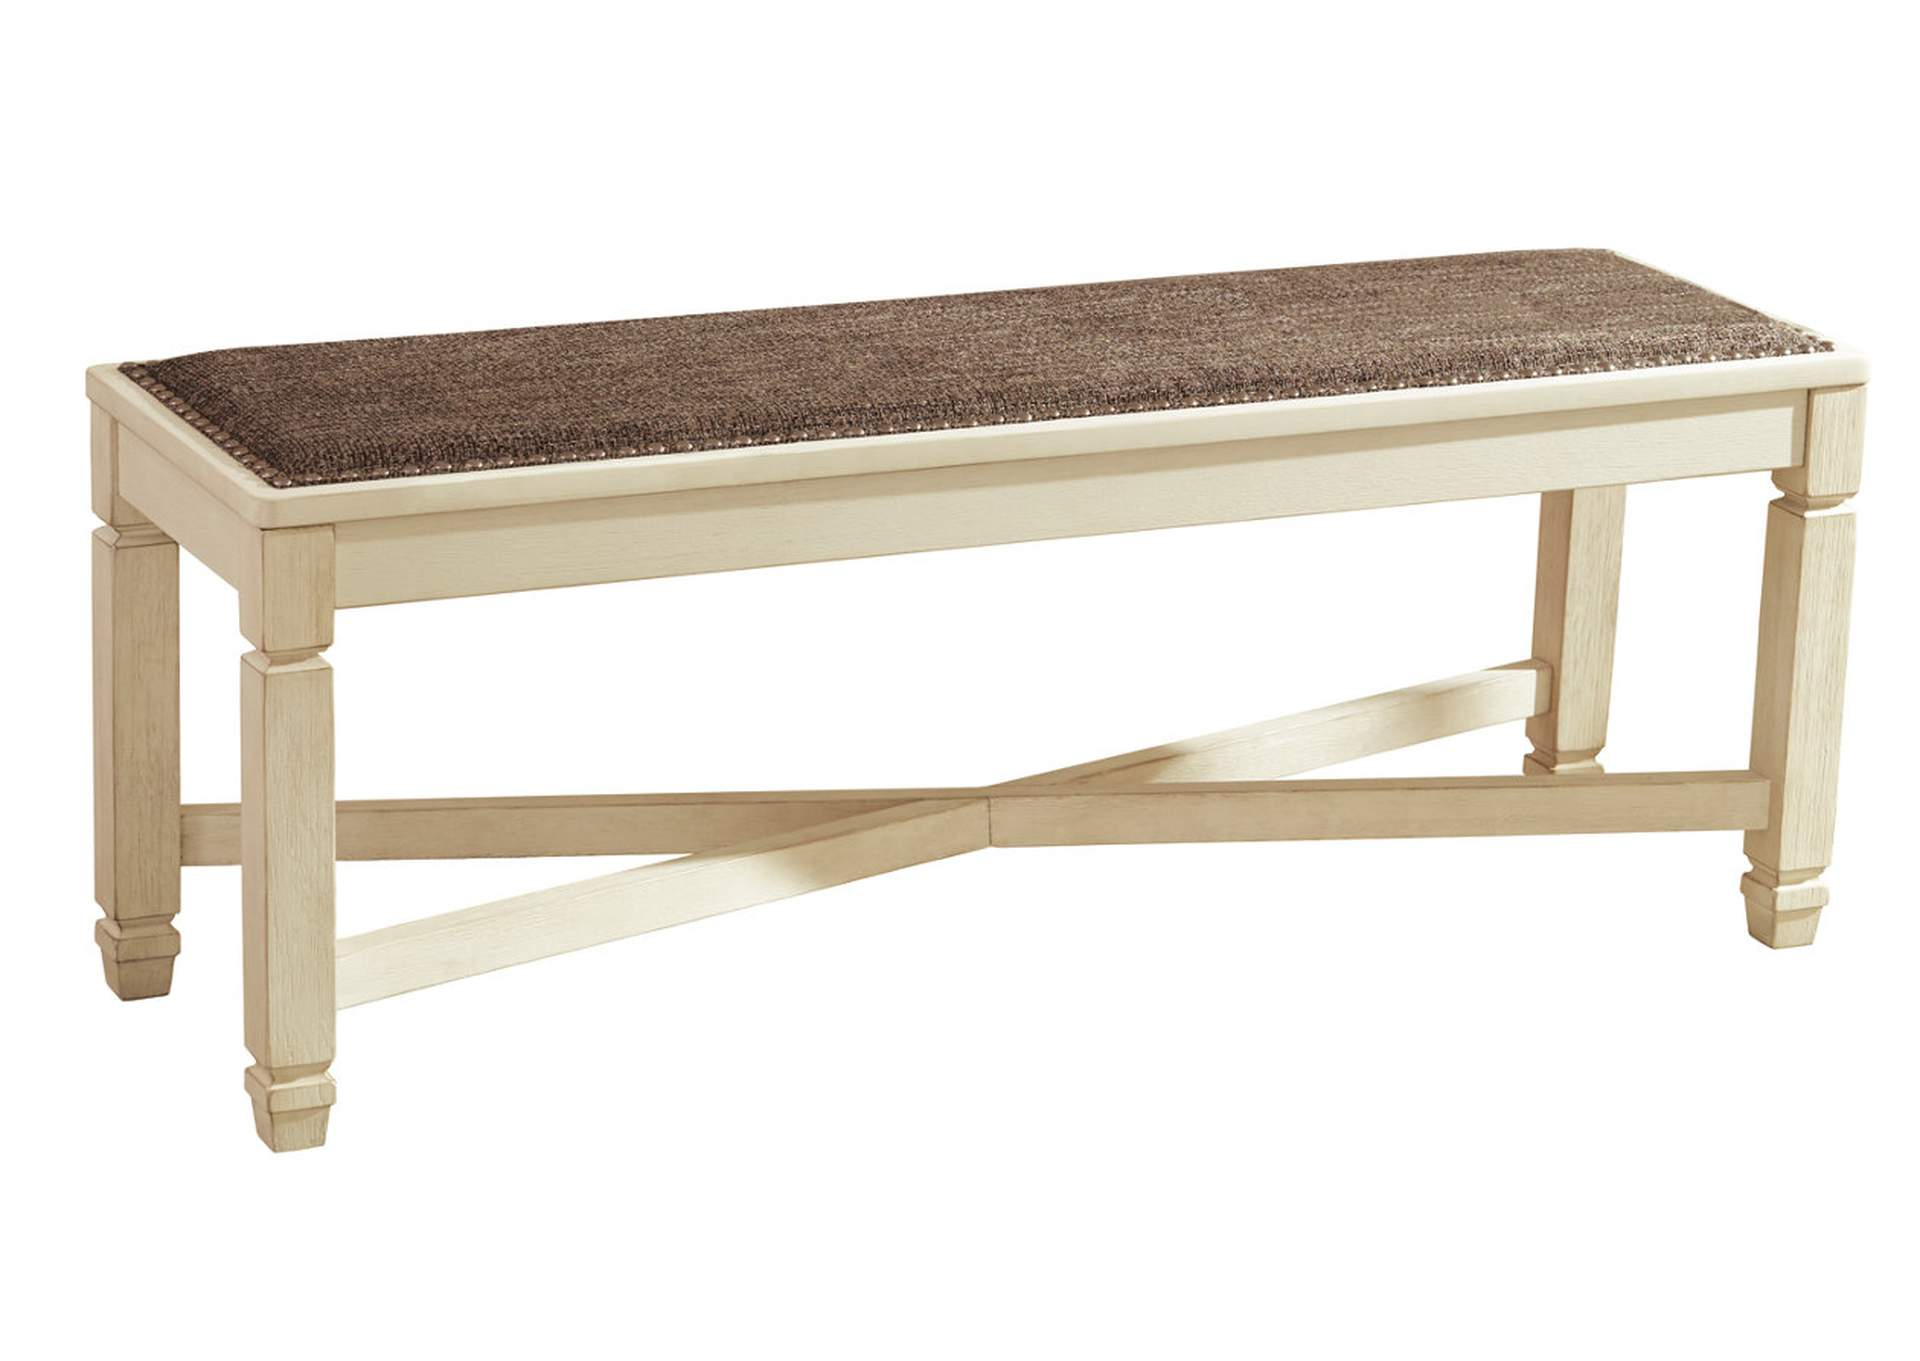 Bolanburg Antique White Large Upholstered Dining Room Bench,ABF Signature Design by Ashley